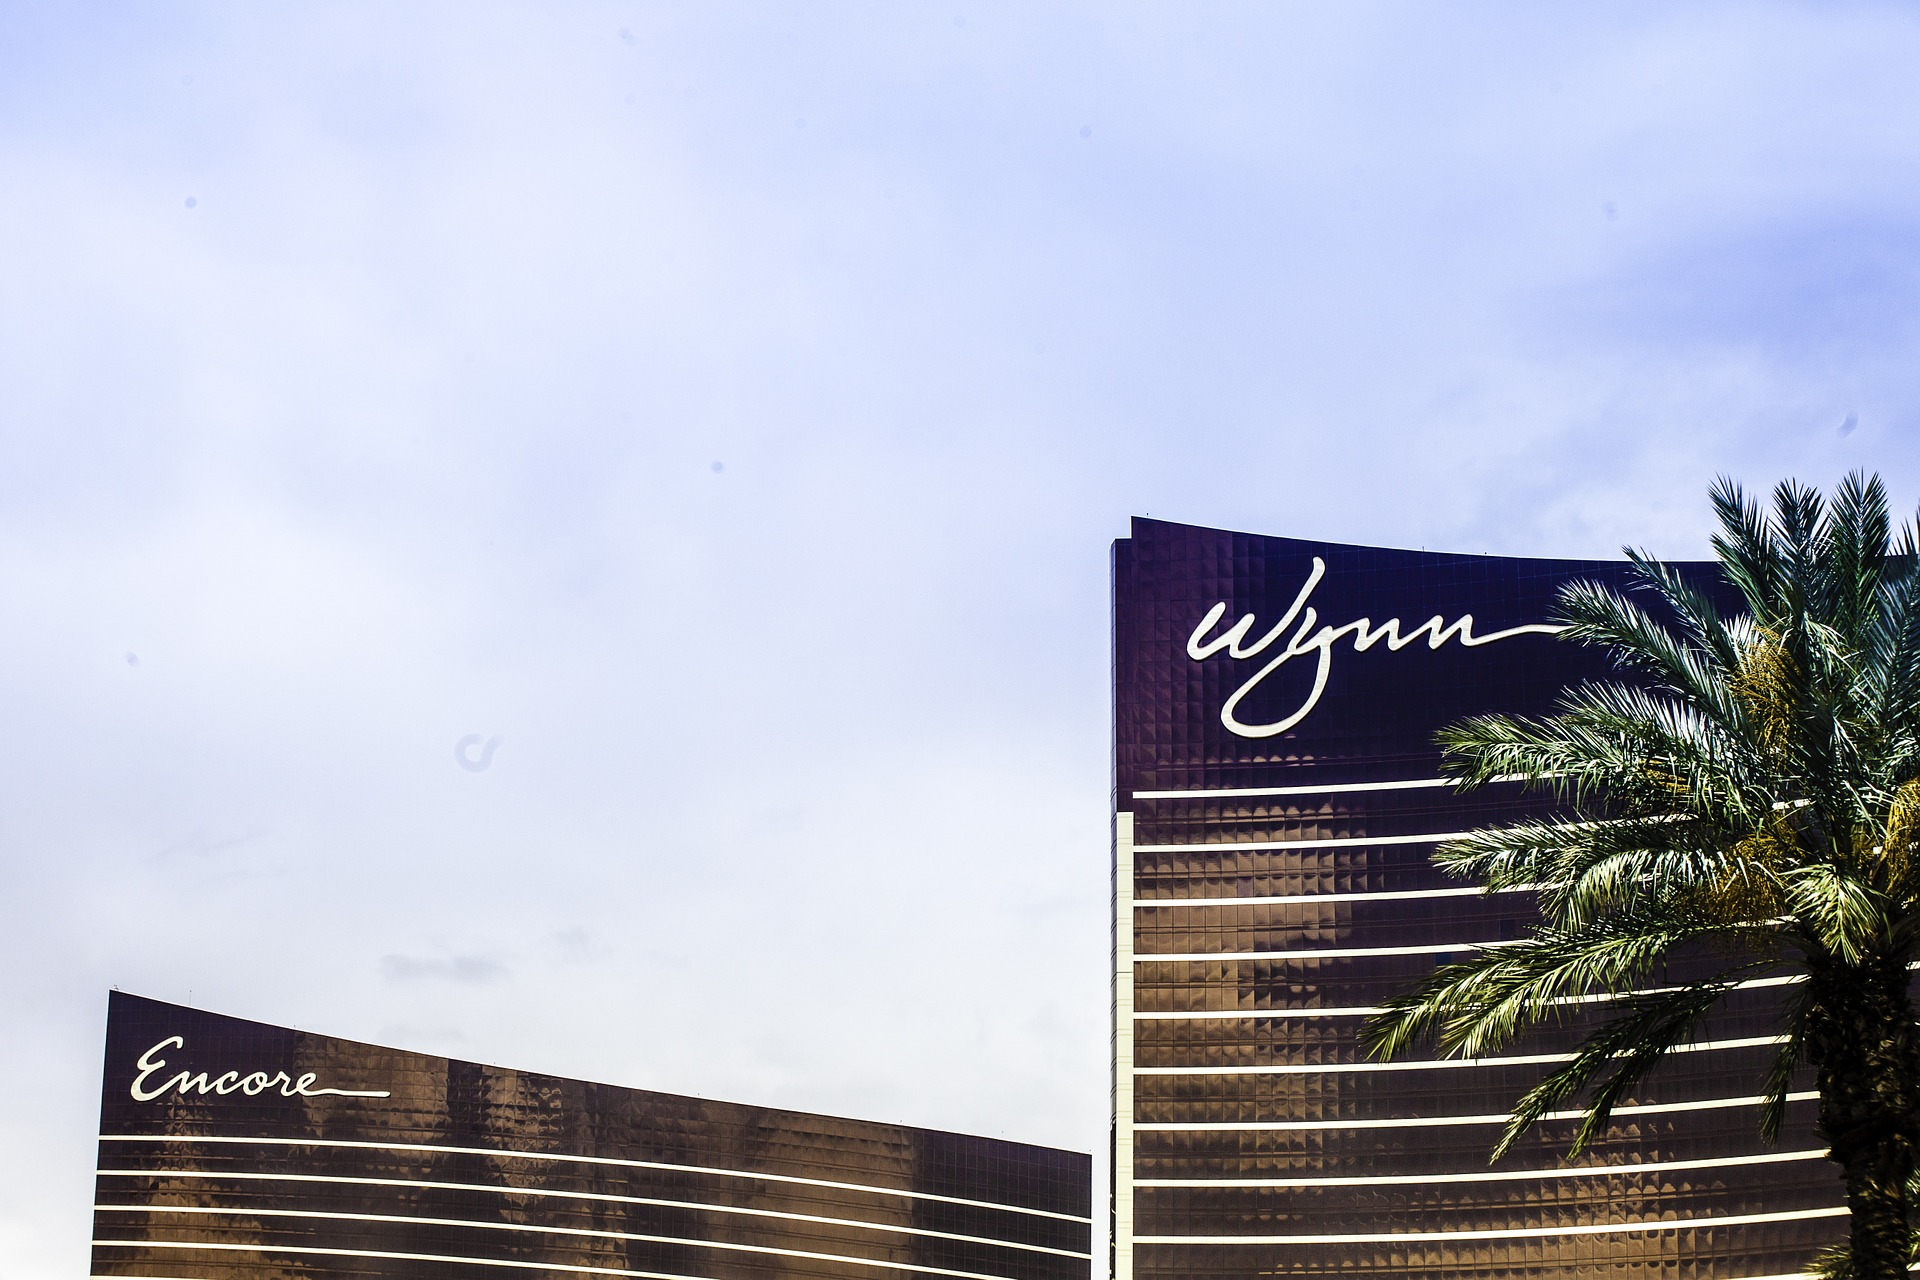 Wynn Hotels WYNN stock news and analysis